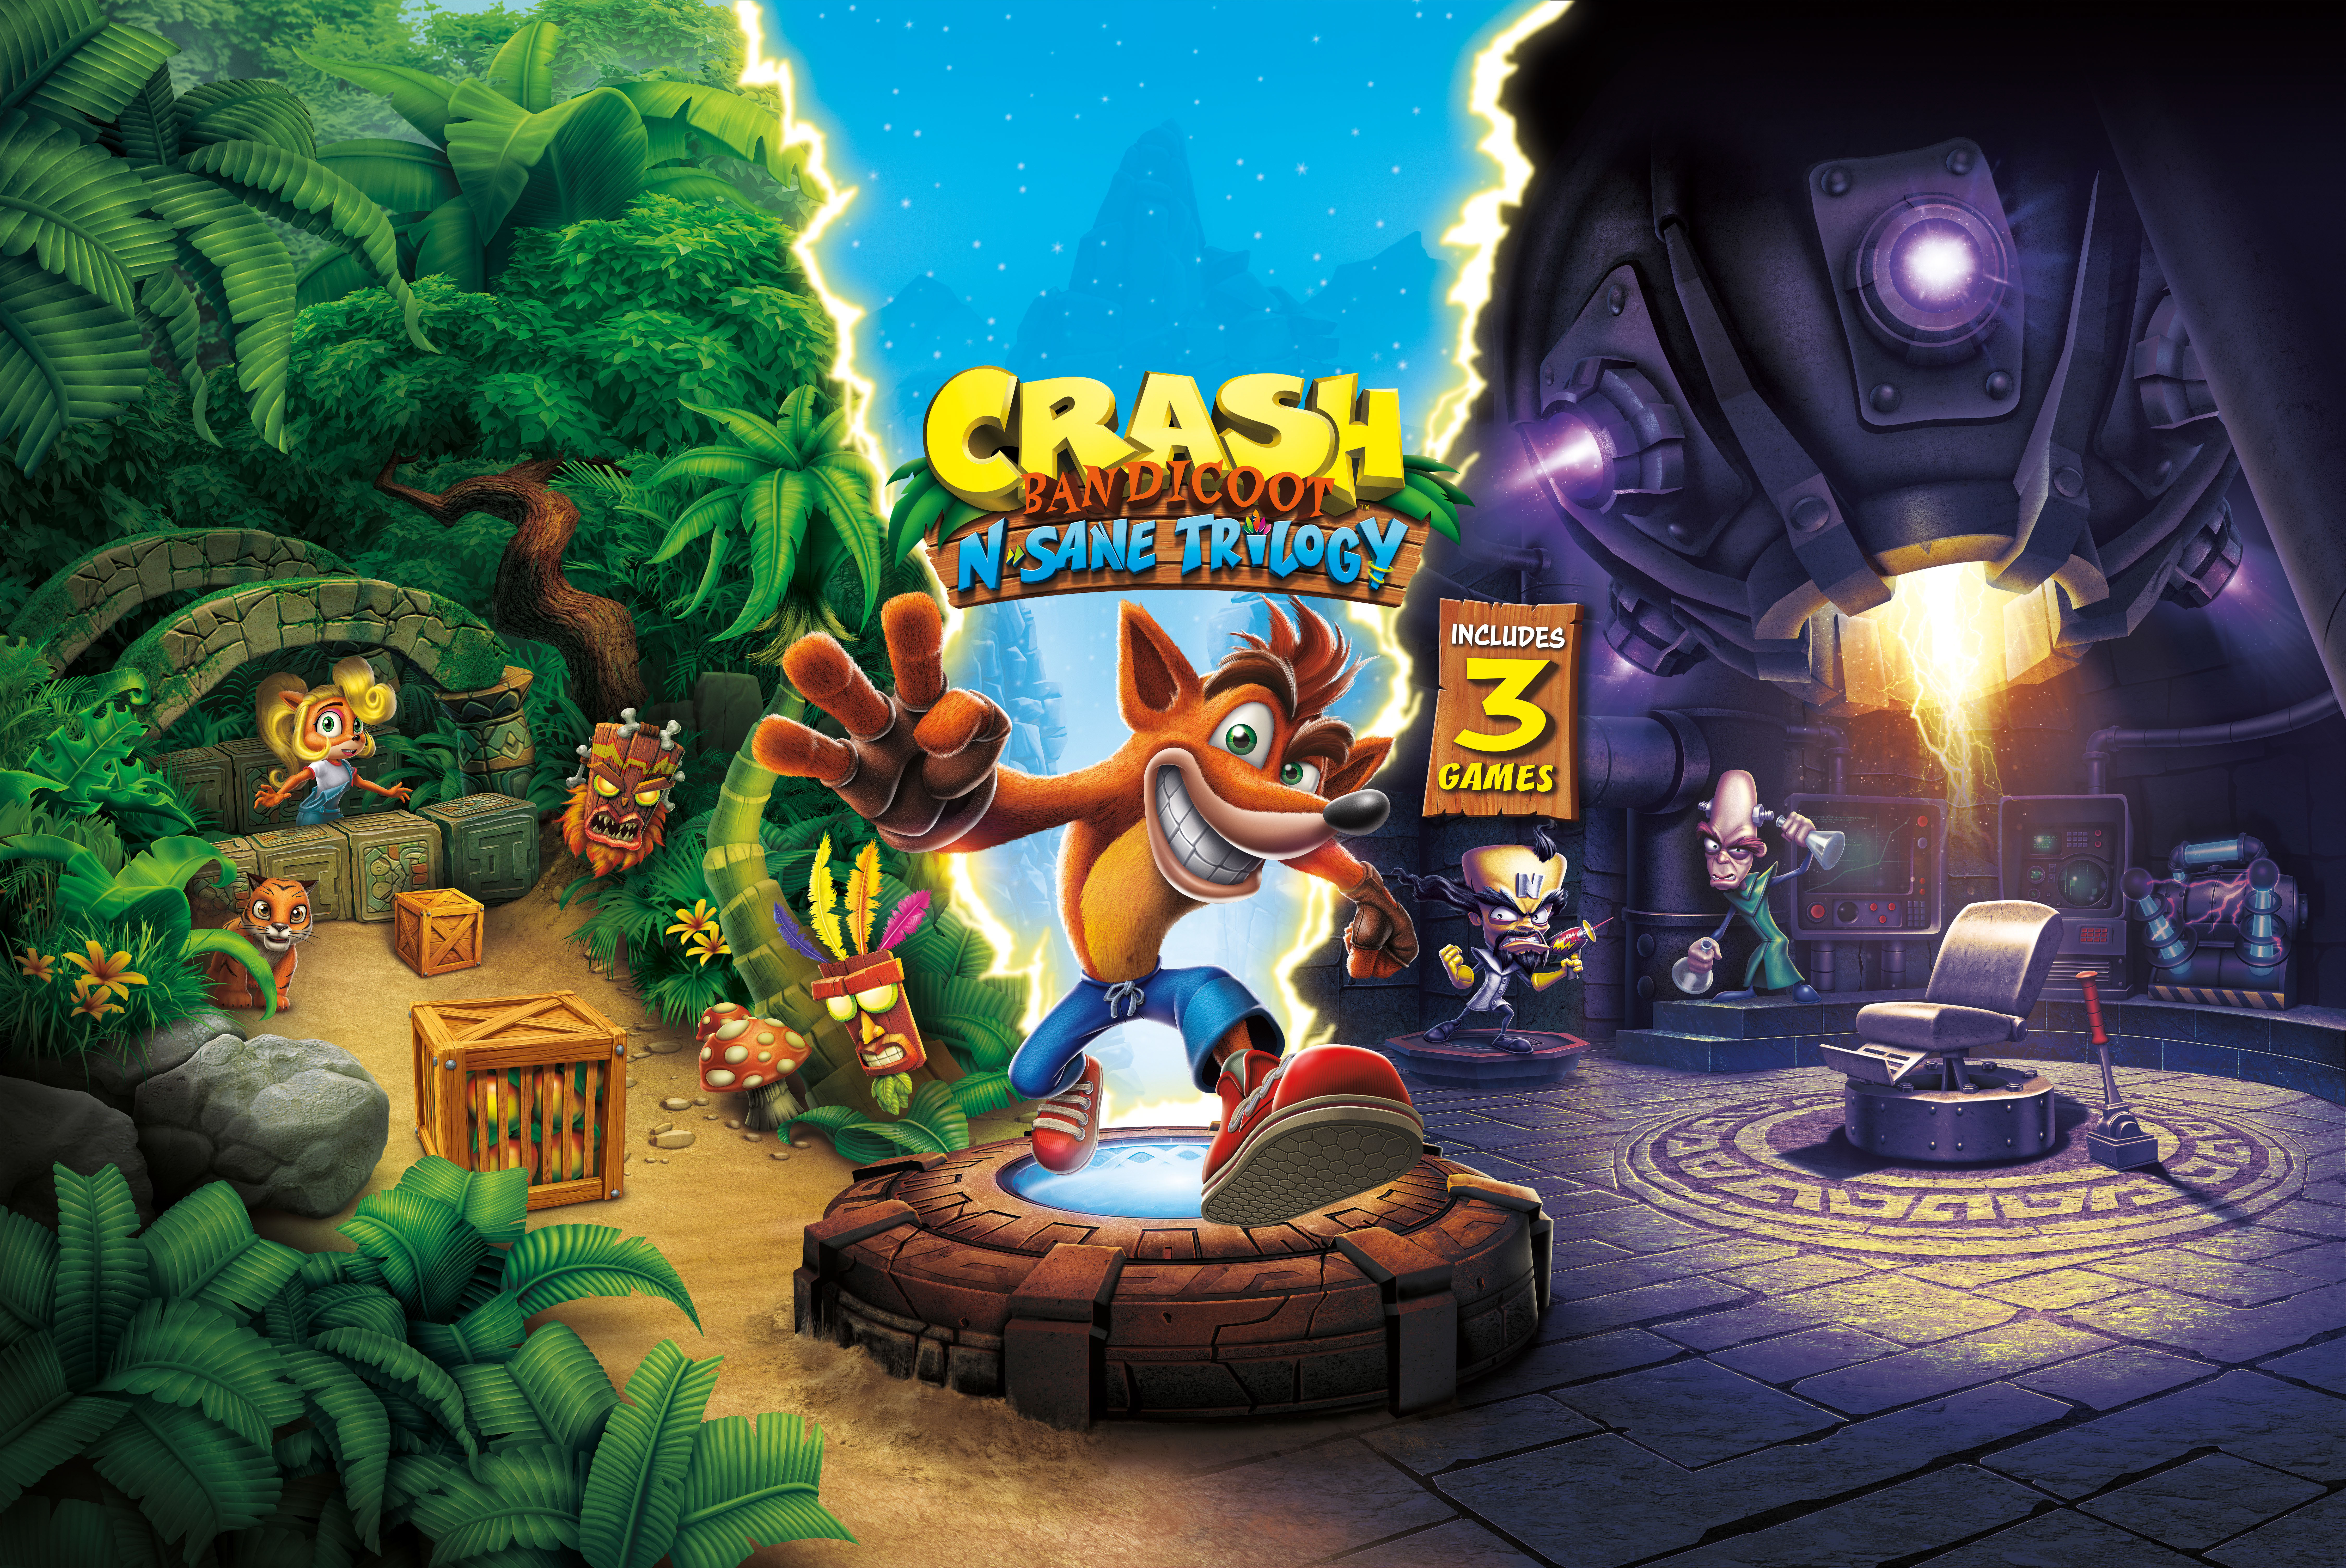 Crash-Bandicoot-N-Sane-Trilogy_2017_05-15-17_001 | Crashy News